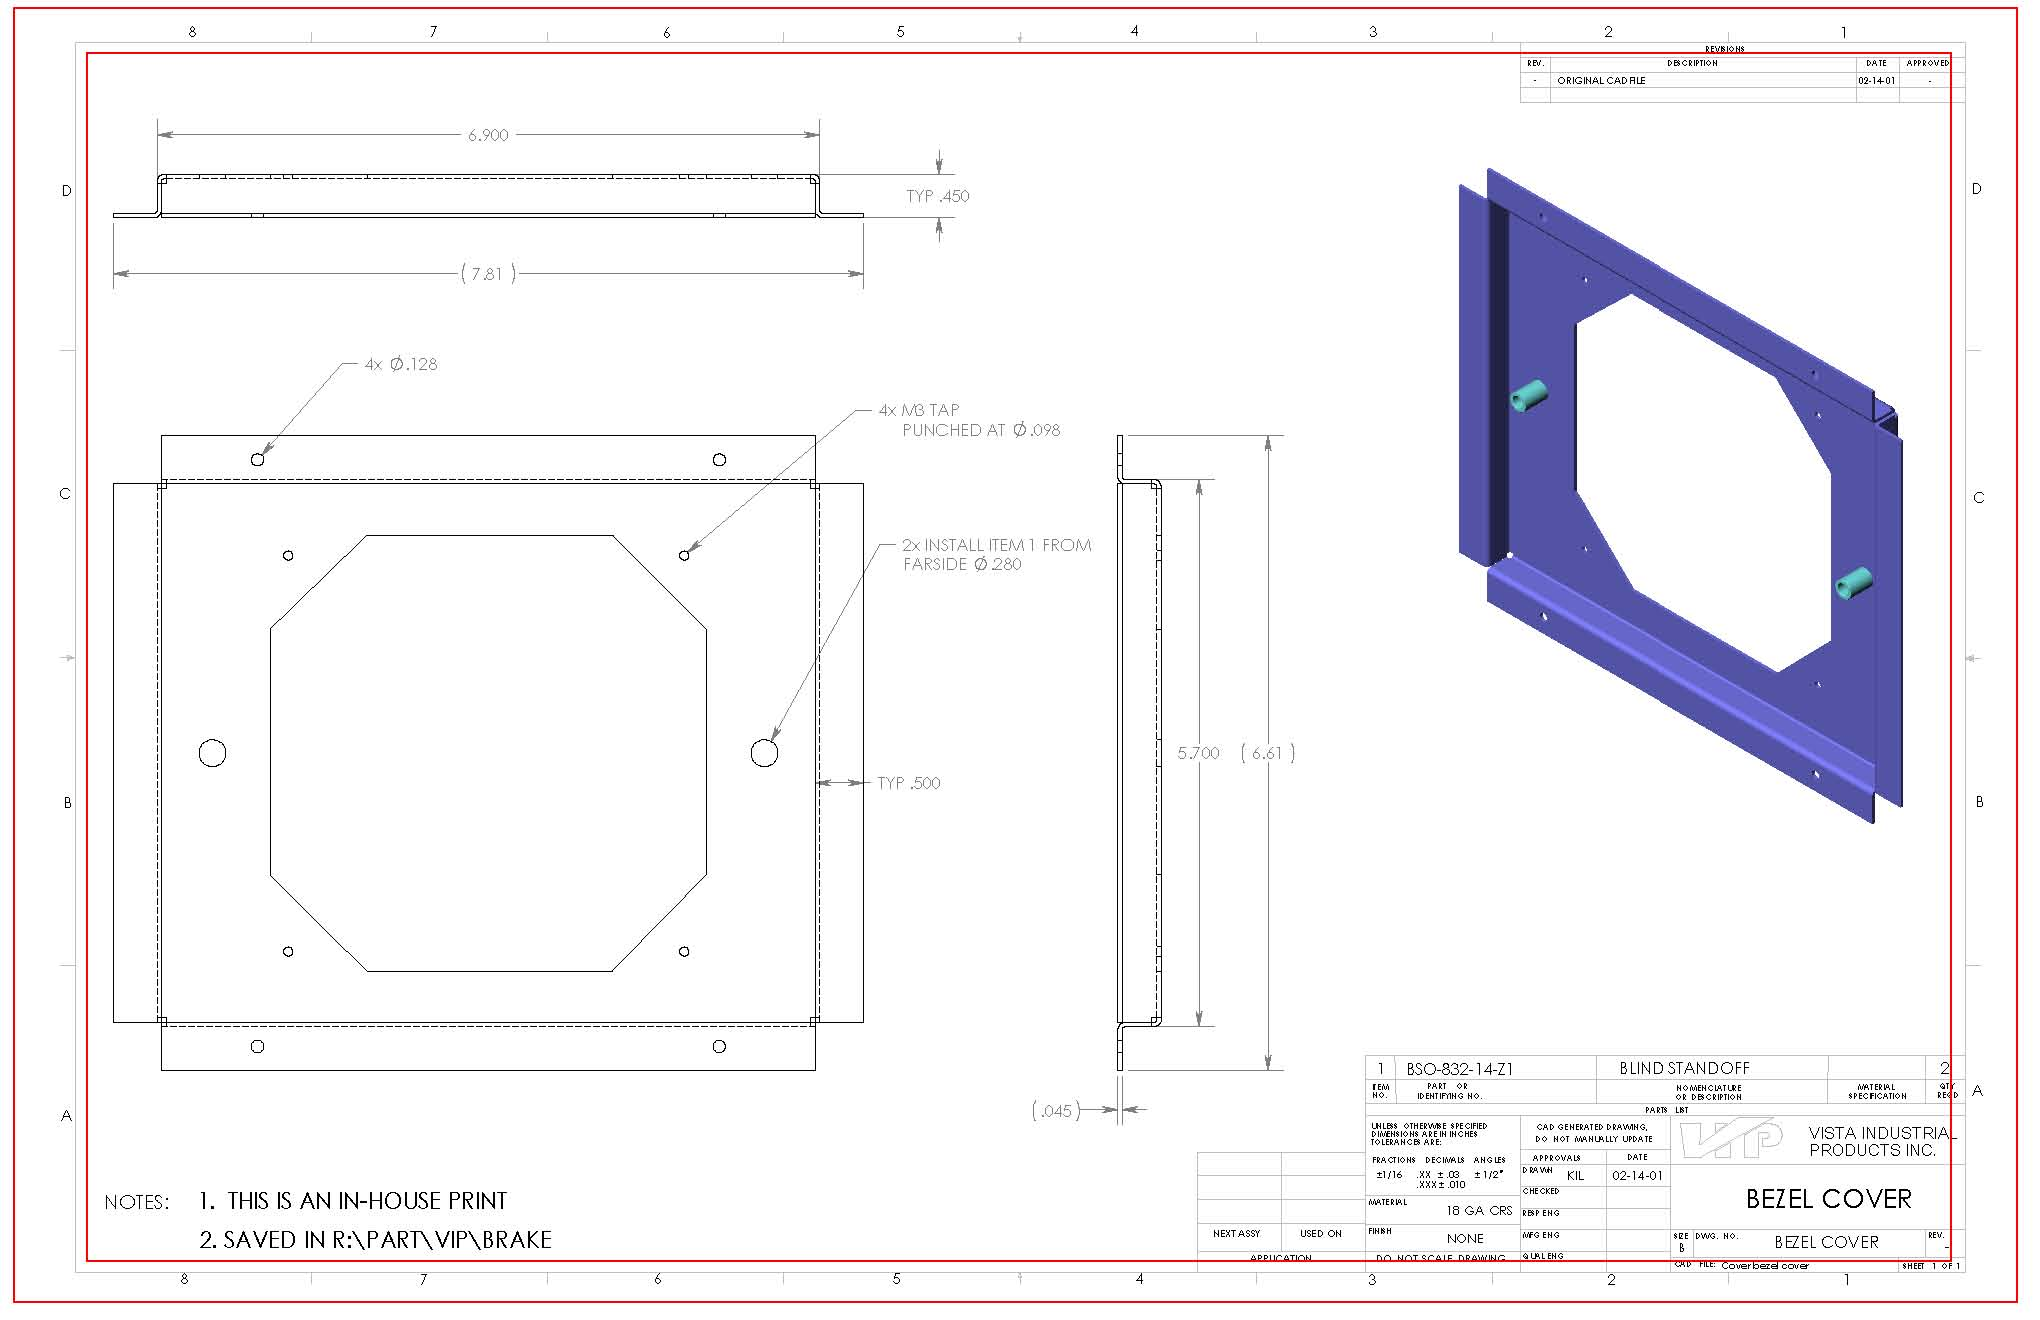 How to read a manufacturing drawing vista industrial products inc blueprint zone letters and numbers malvernweather Image collections